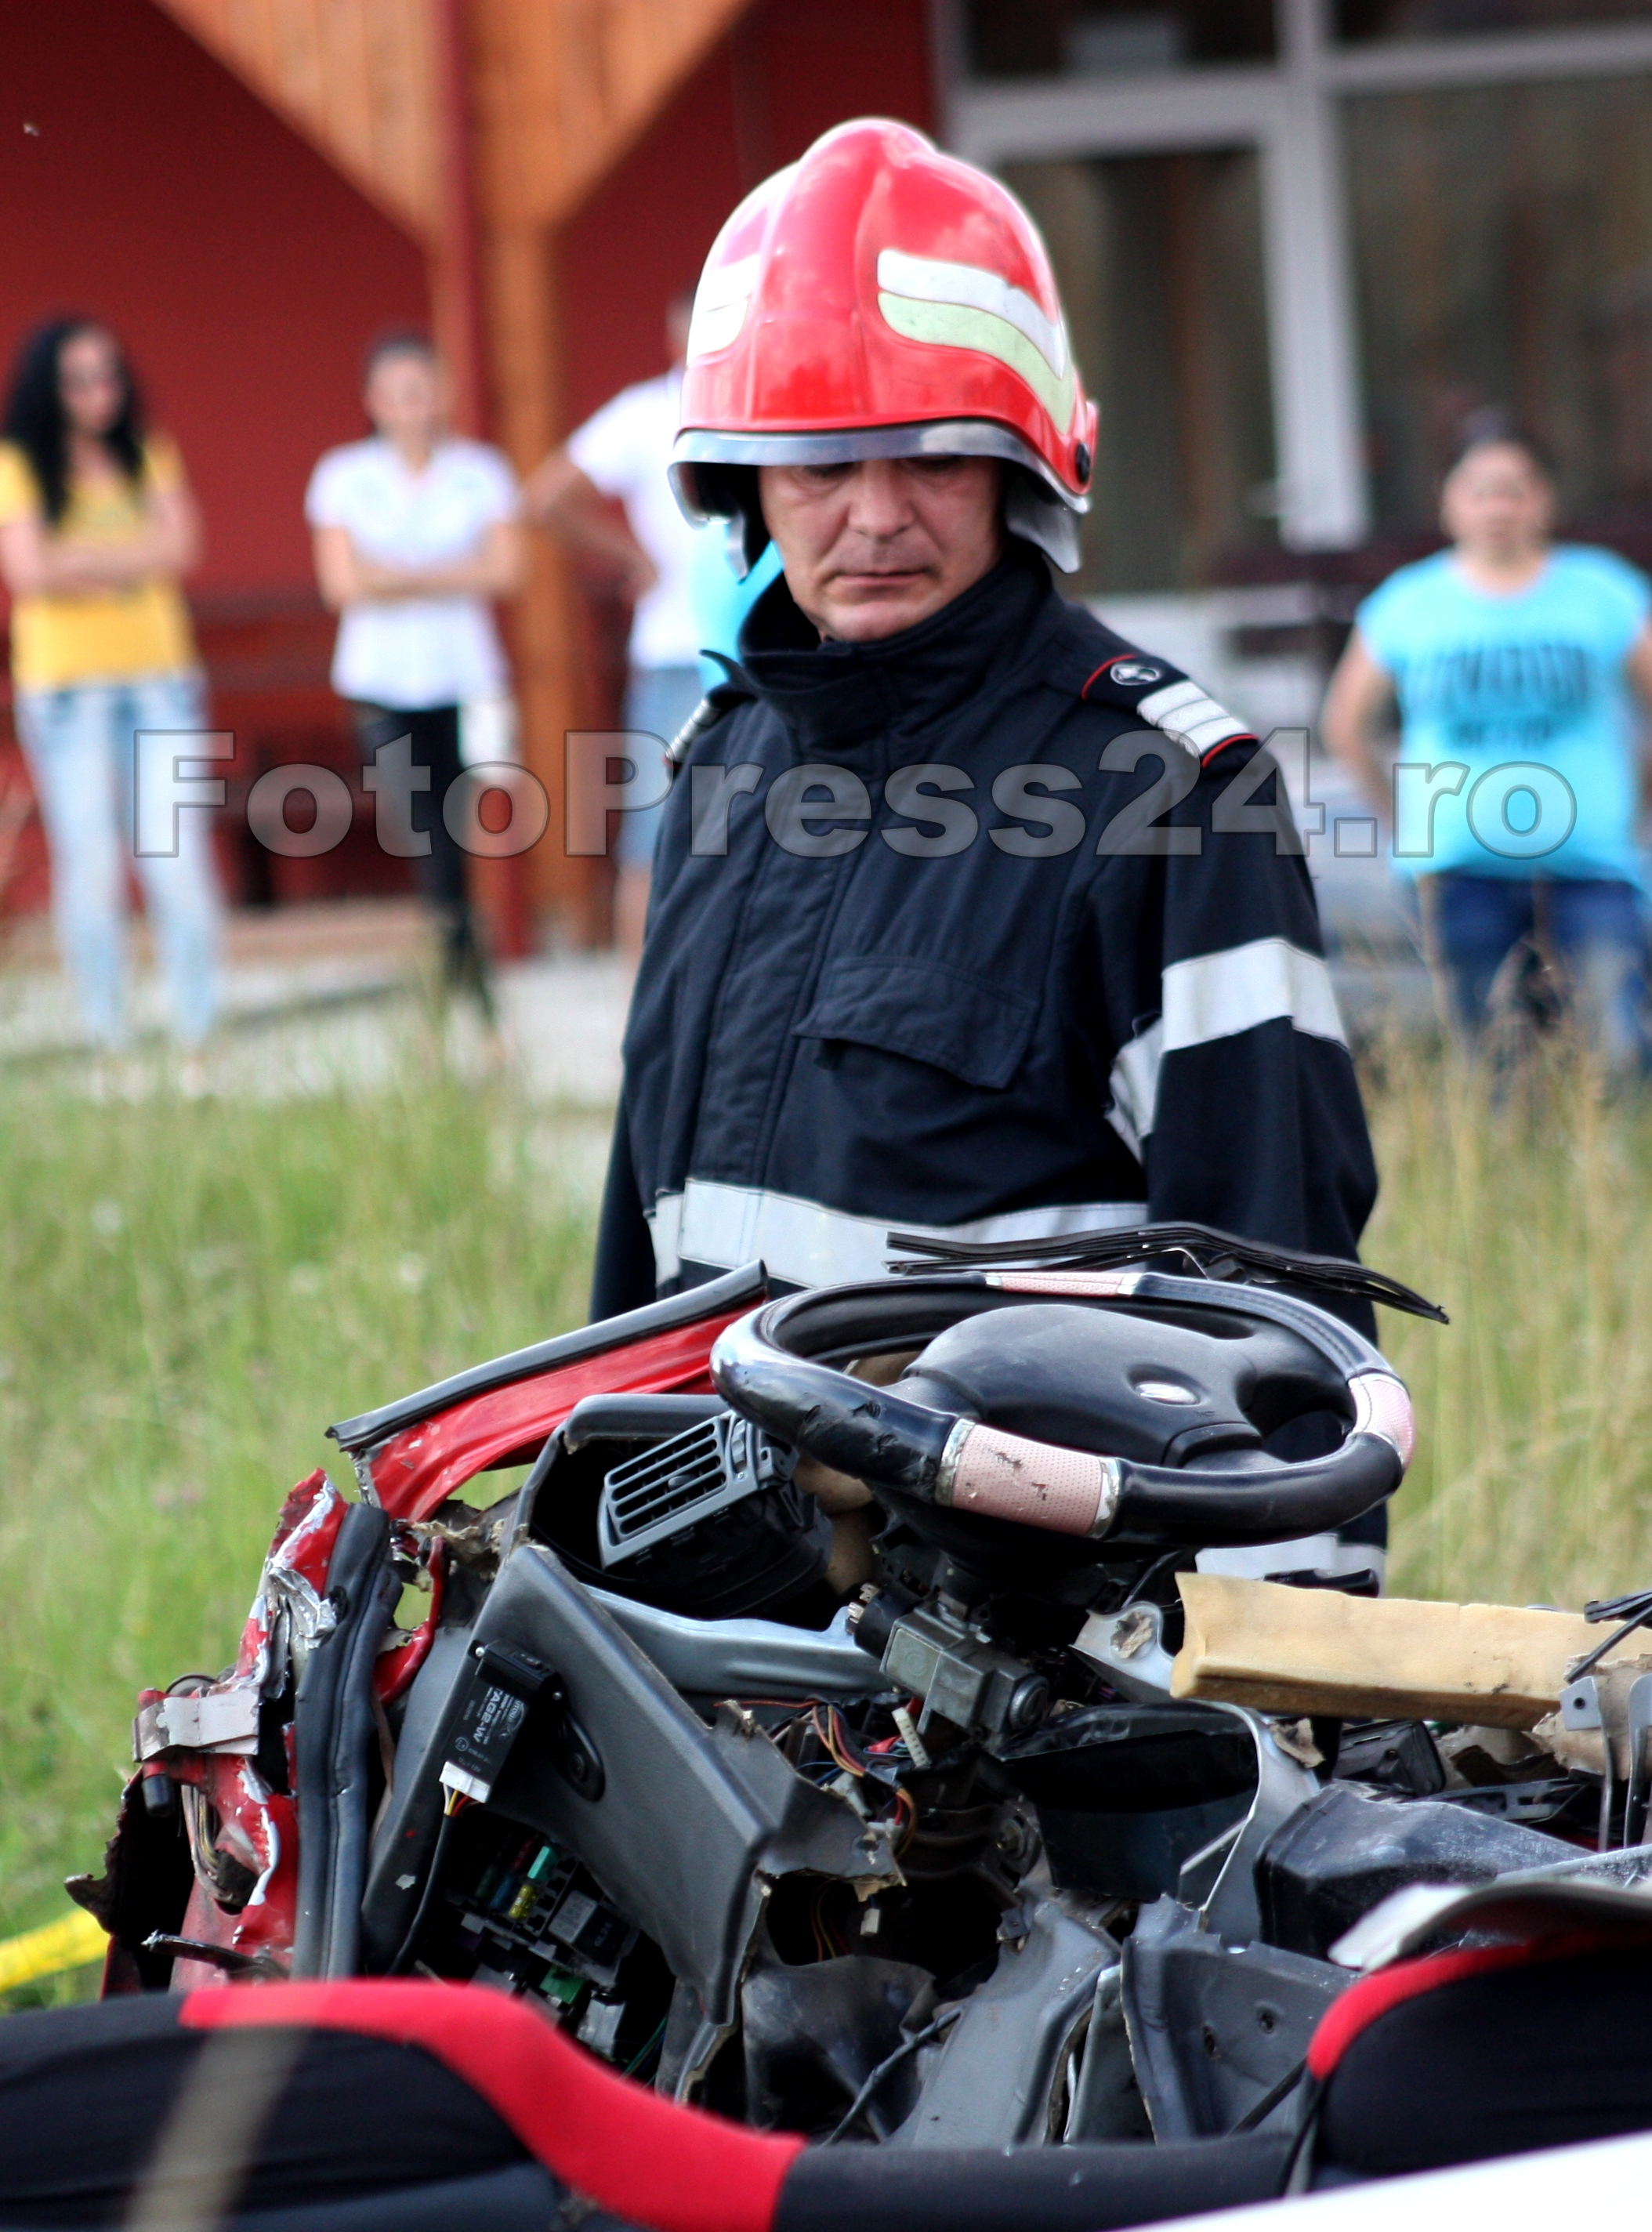 accident Albota 3 morti-FotoPress24.ro-Mihai Neacsu (49)